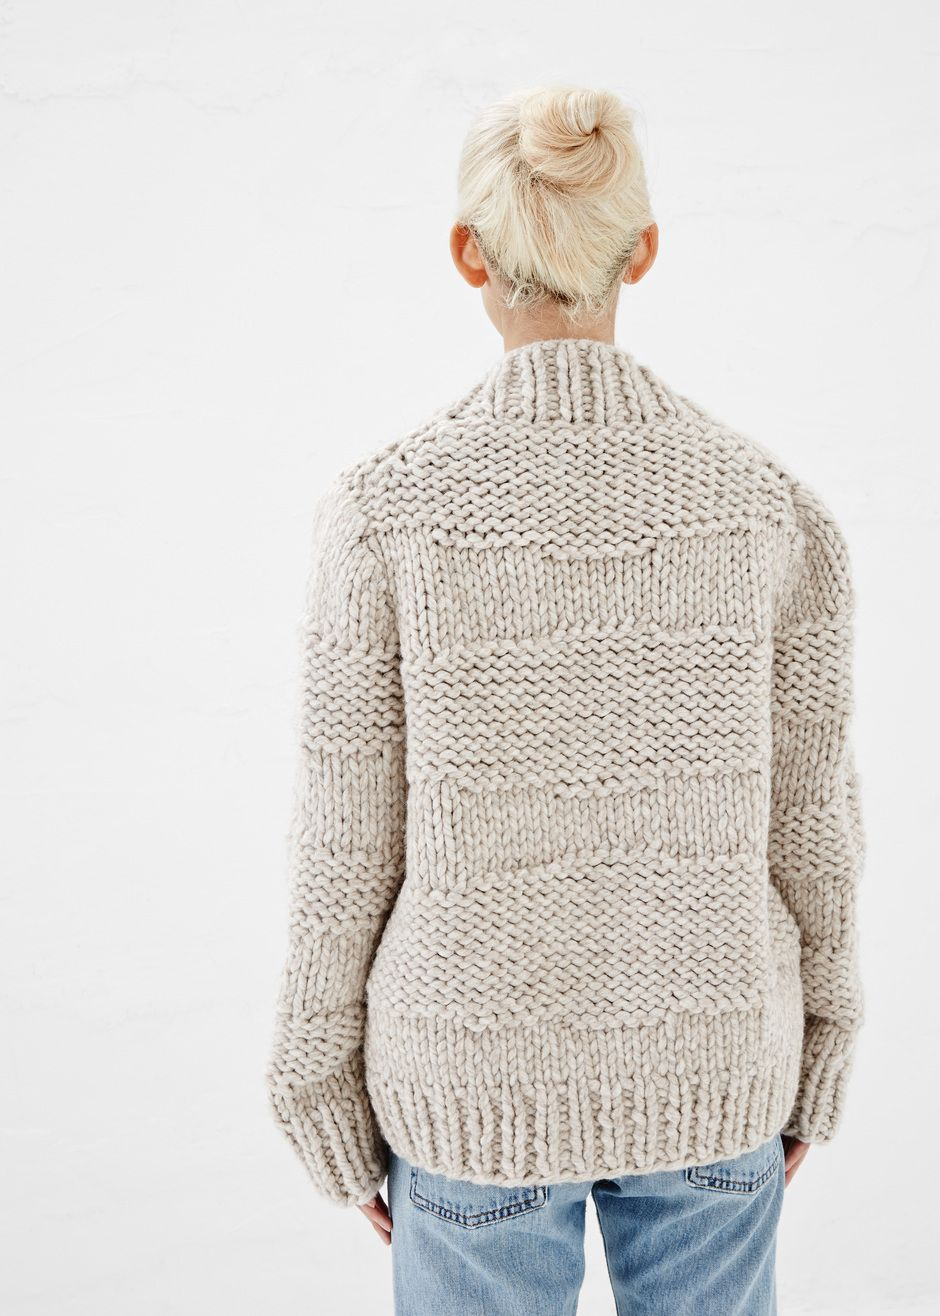 Oversized, long-sleeved hand-knit cardigan in a natural alpaca ...